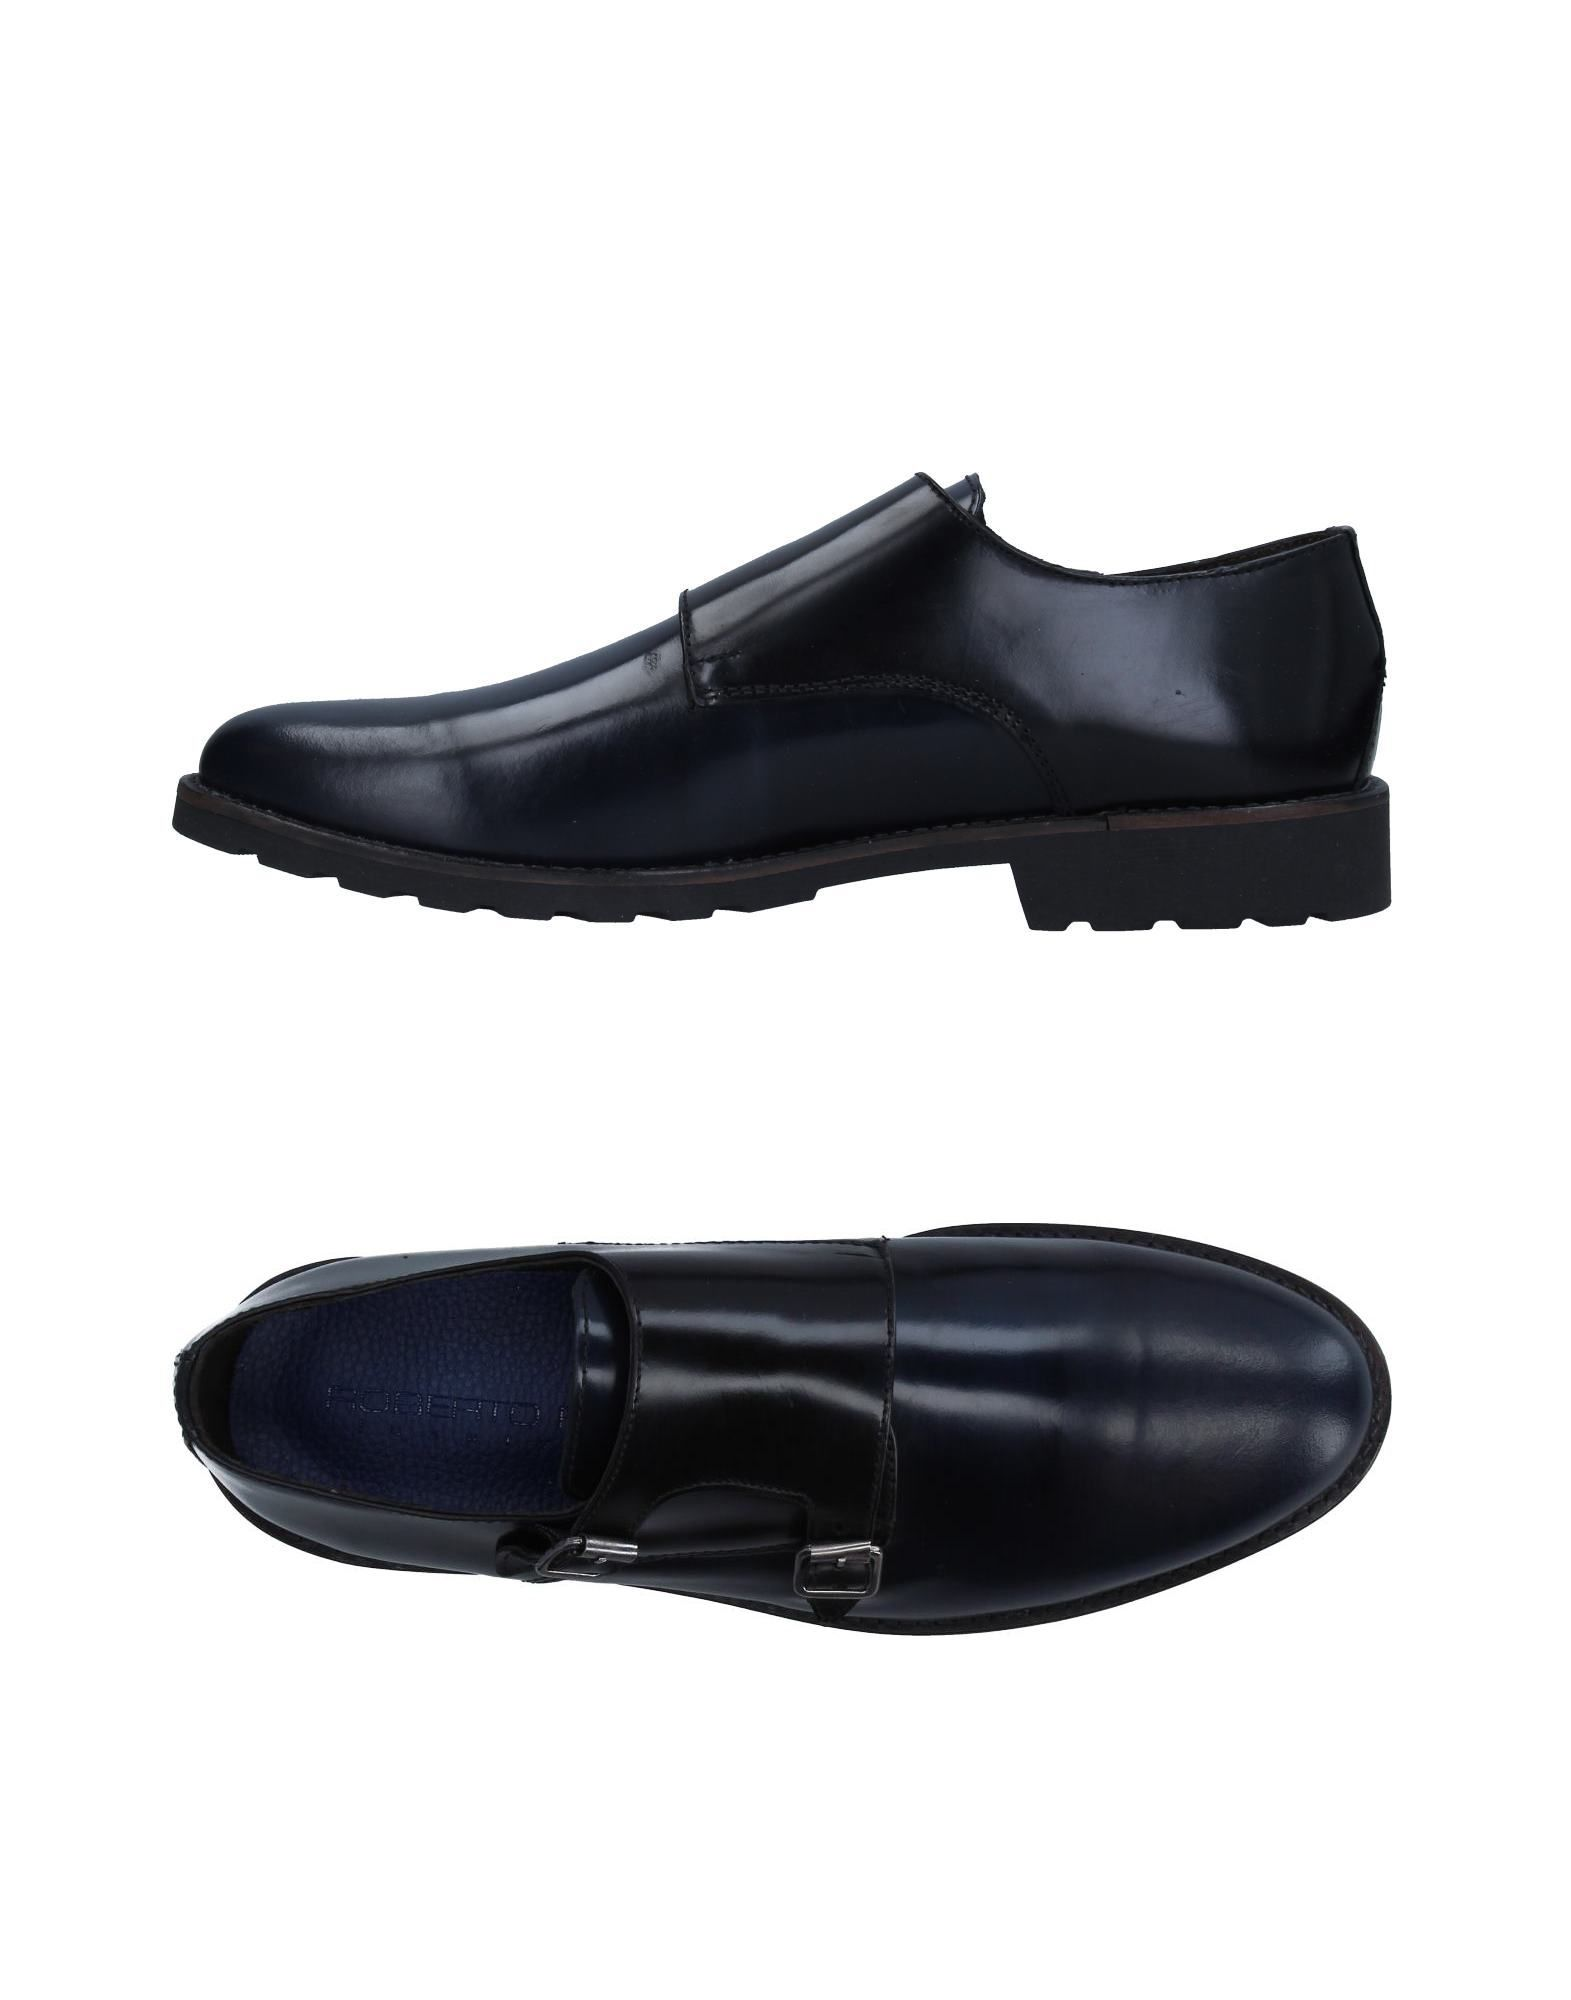 CHAUSSURES - MocassinsROBERTO P LUXURY bcqH12CbL4